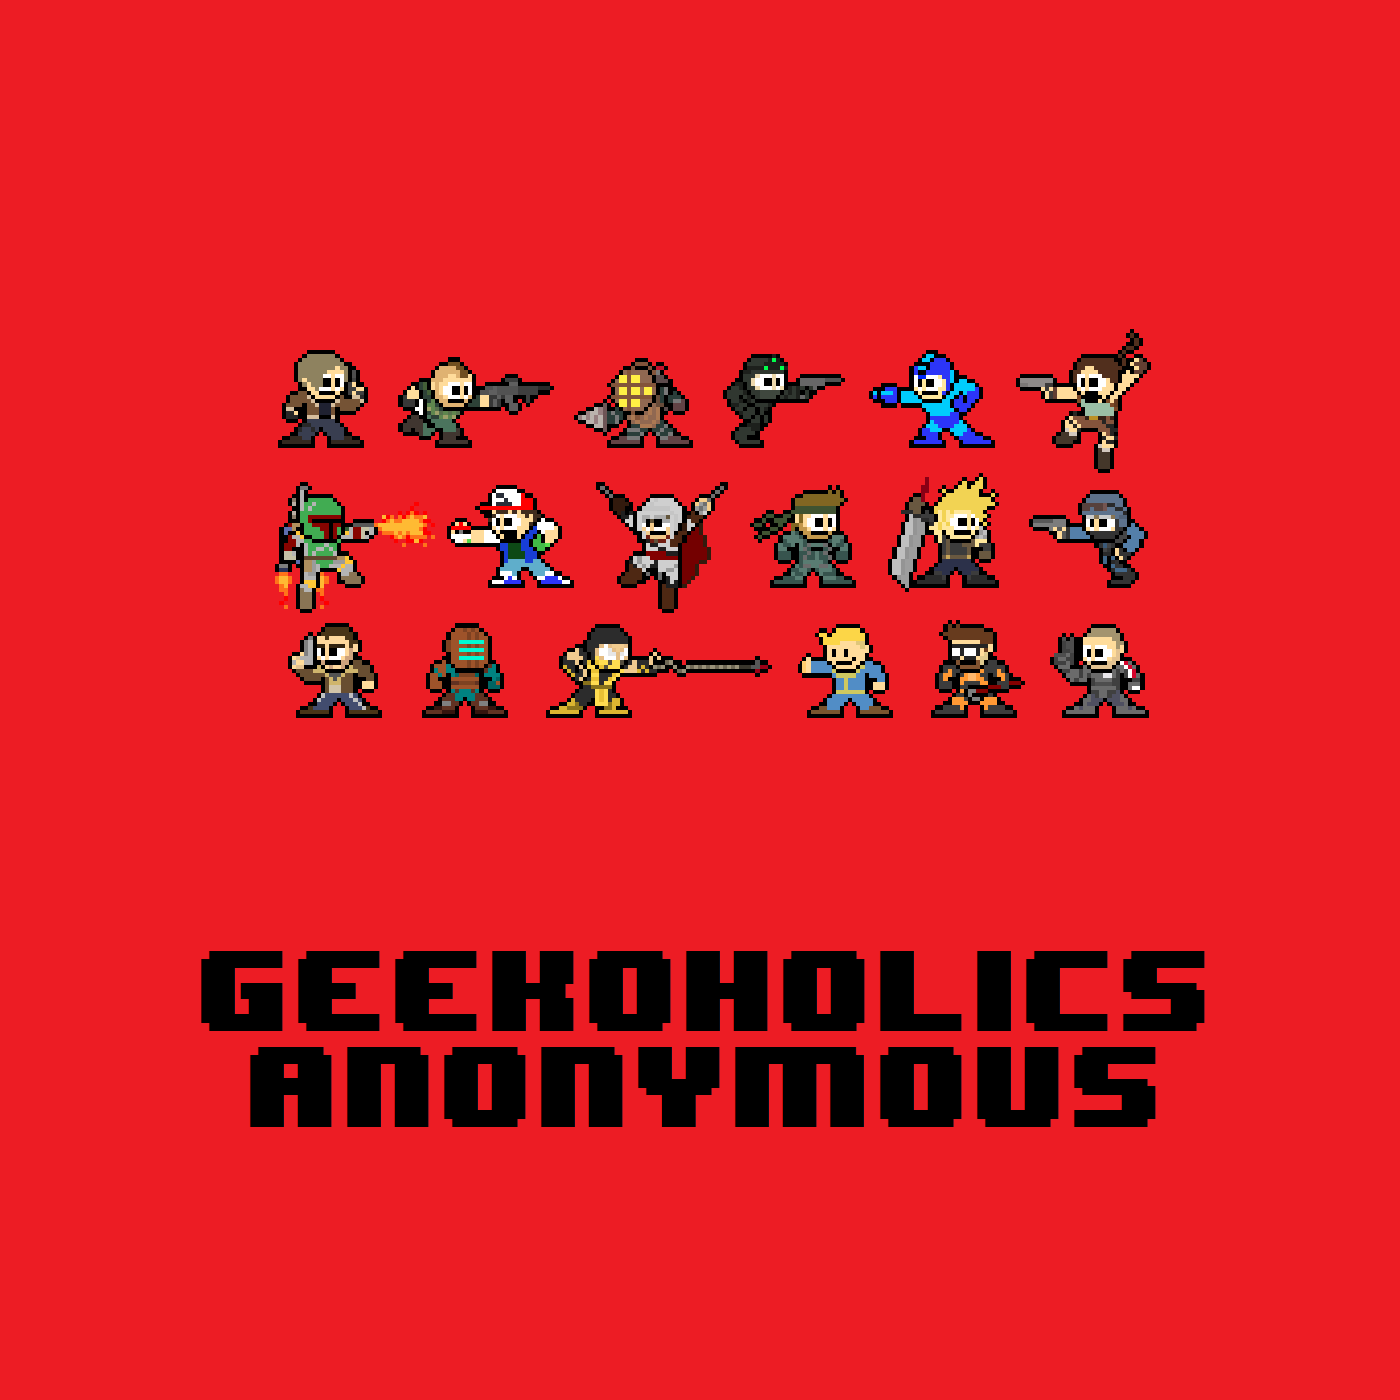 Werewolf The Apocalypse, Pedro Pascal, Bitcoin and more - Geekoholics Anonymous Podcast 292 show art